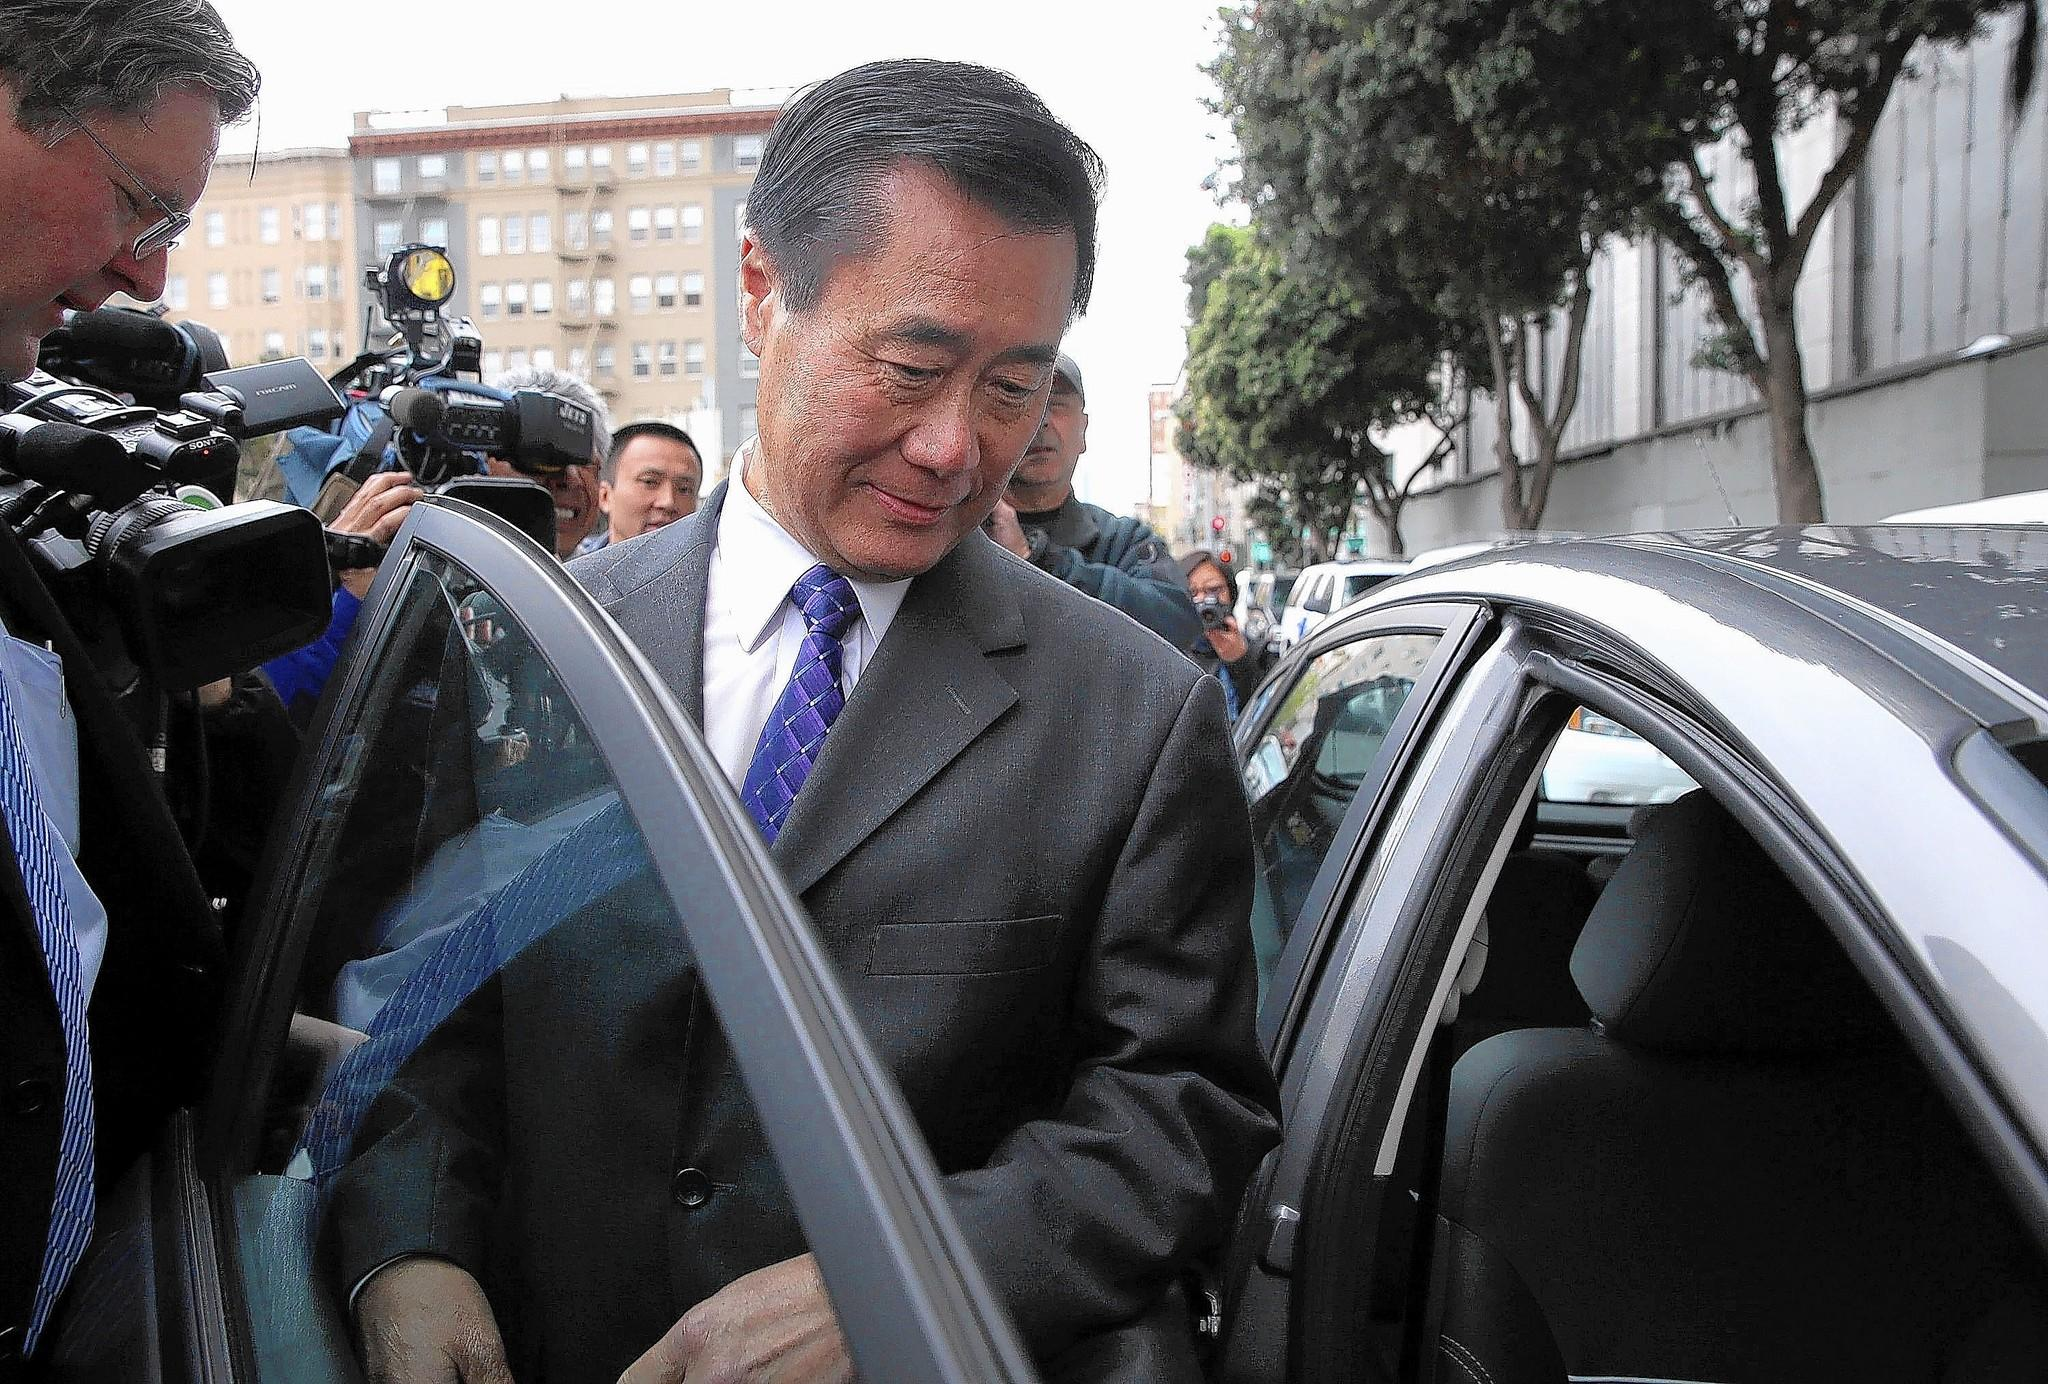 State Sen. Leland Yee leaves the Federal Building in San Francisco after a court appearance. Yee was arrested by FBI agents last week on charges of criminal corruption and conspiring to illegally traffic firearms.